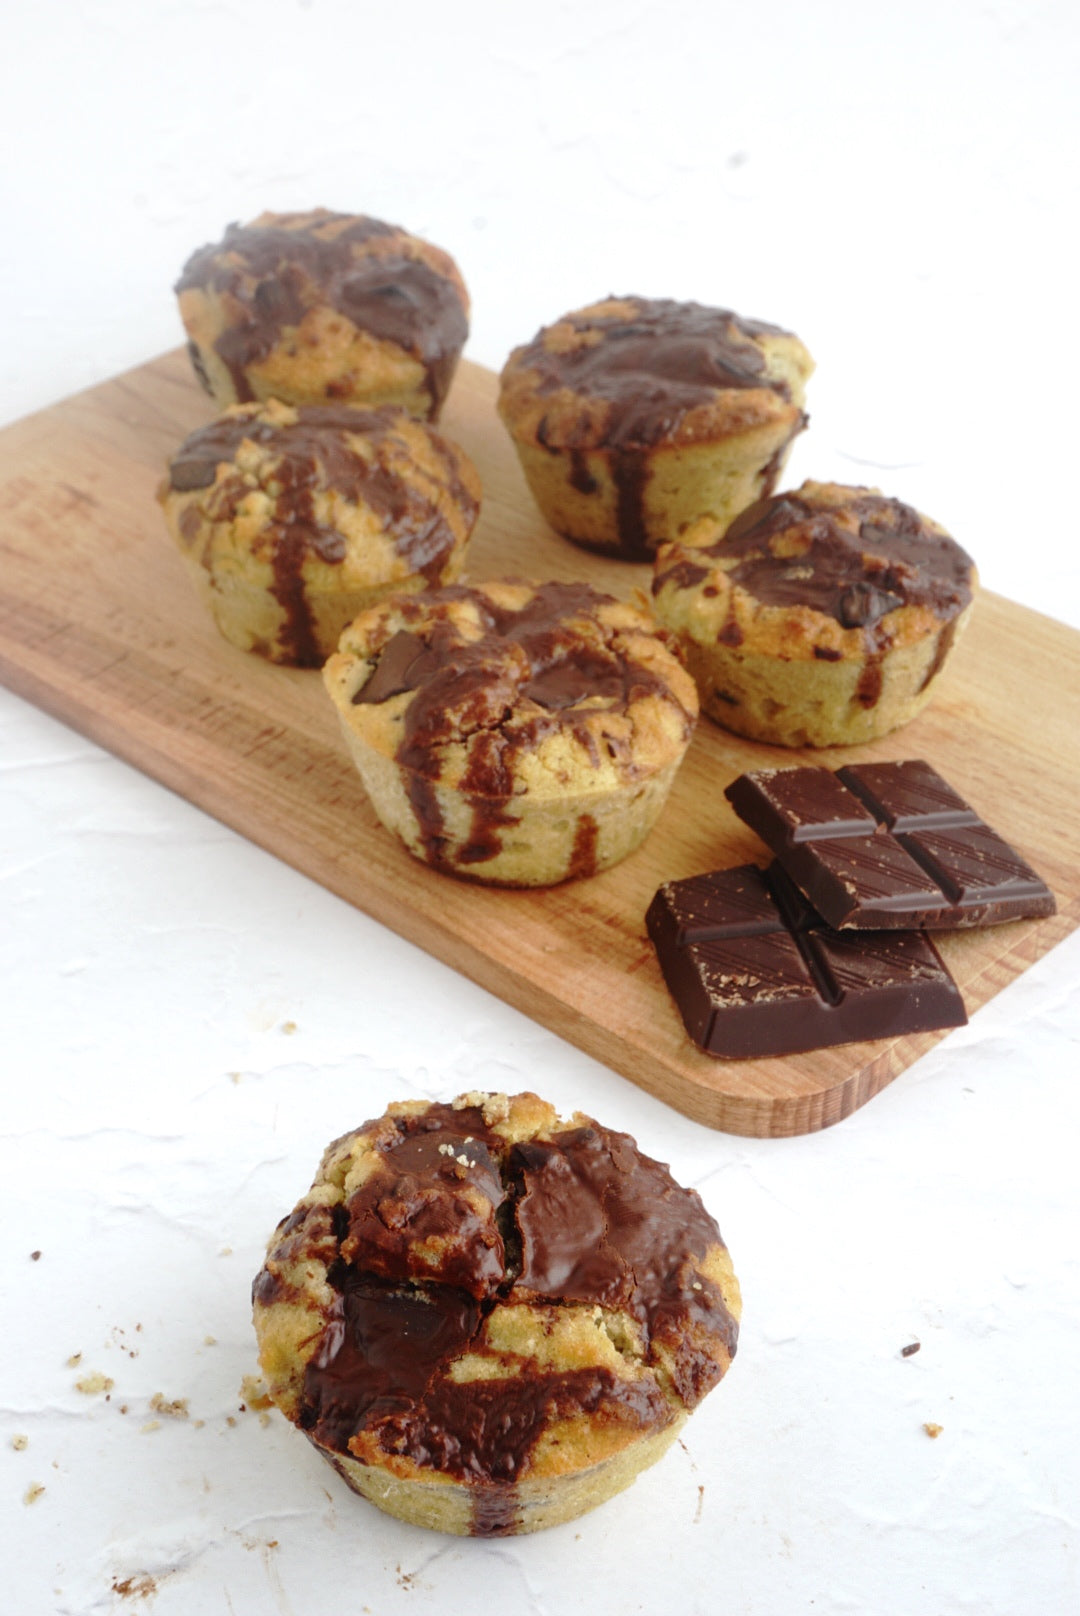 Chocolate muffins which are 100% keto friendly and made with OKONO chocolate